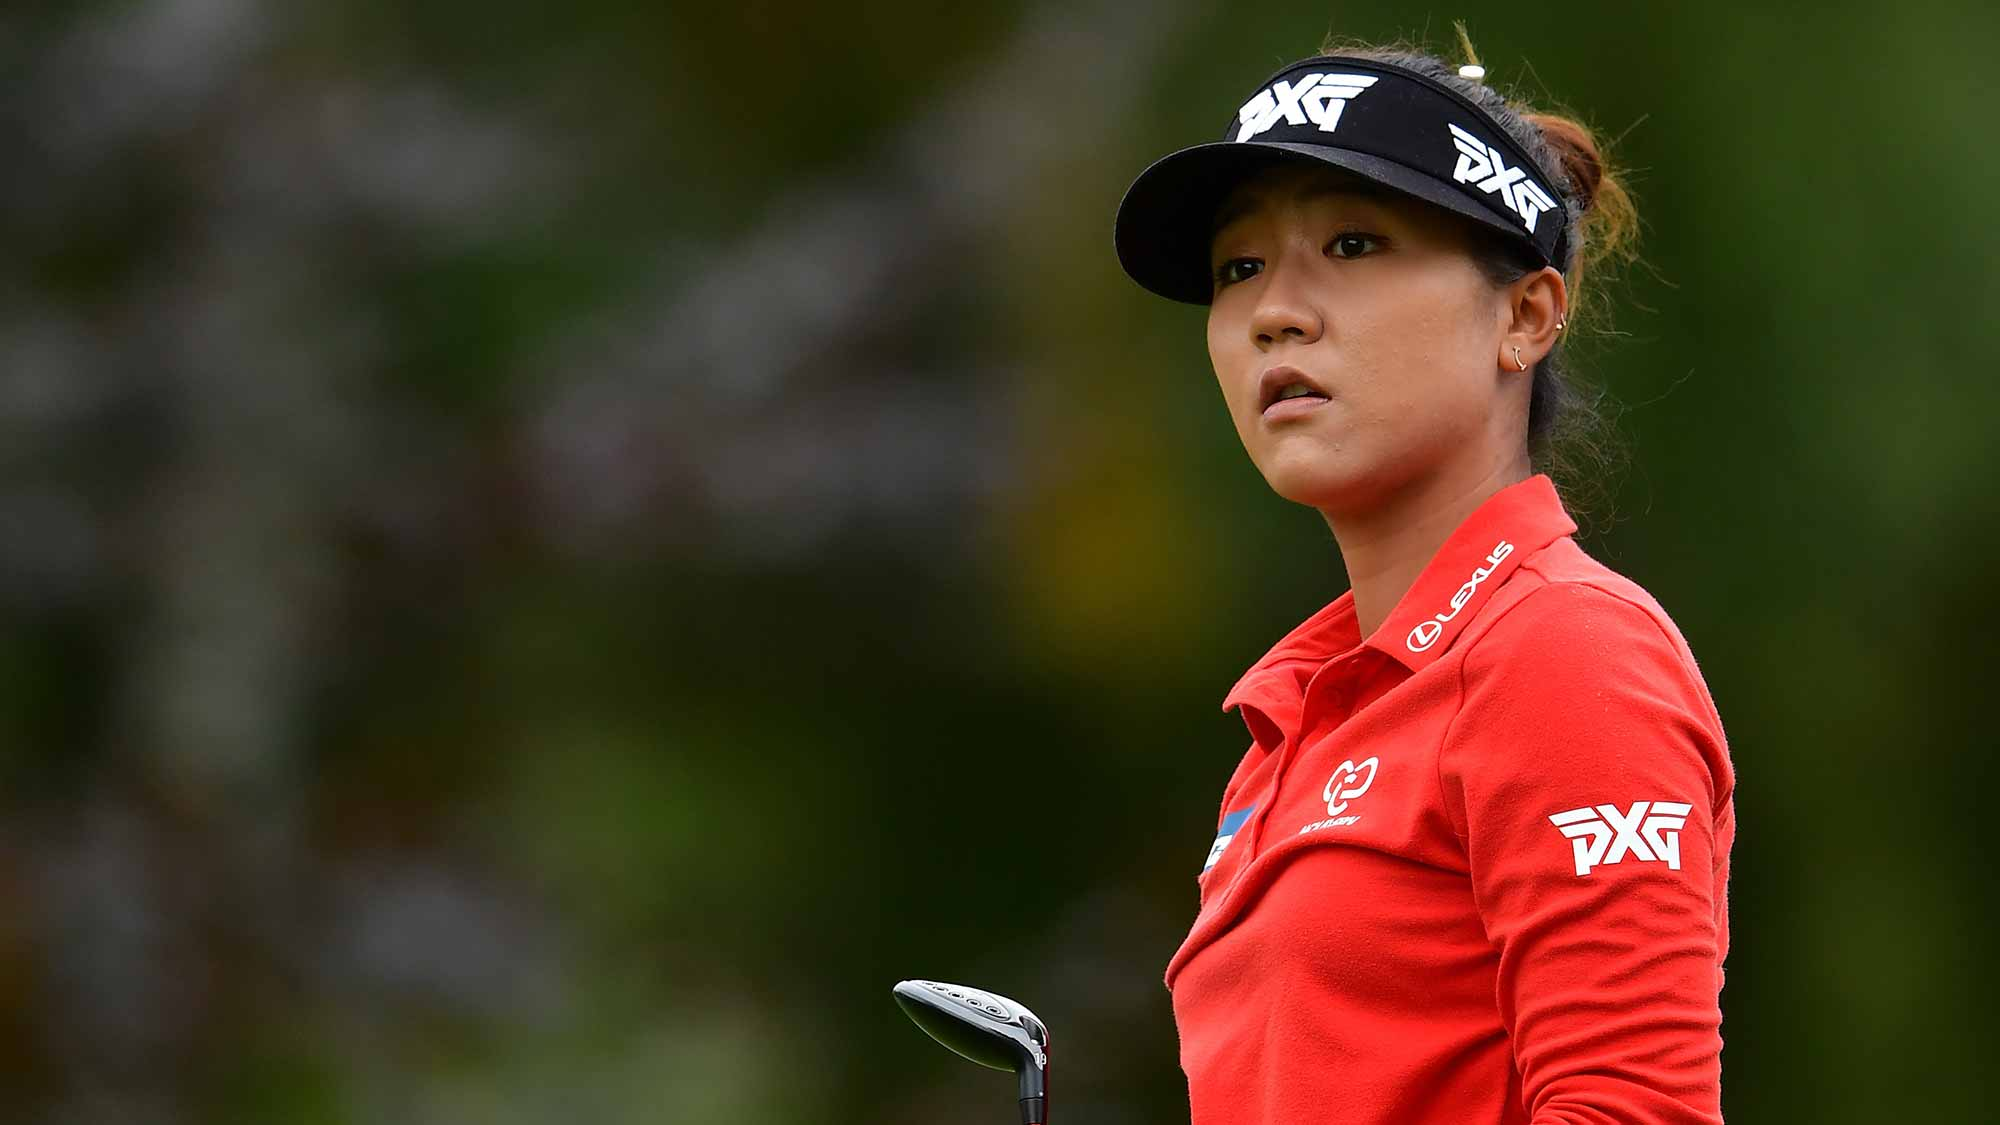 Lydia Ko of New Zealand at The Evian Golf Club in Evian-les-Bains, France